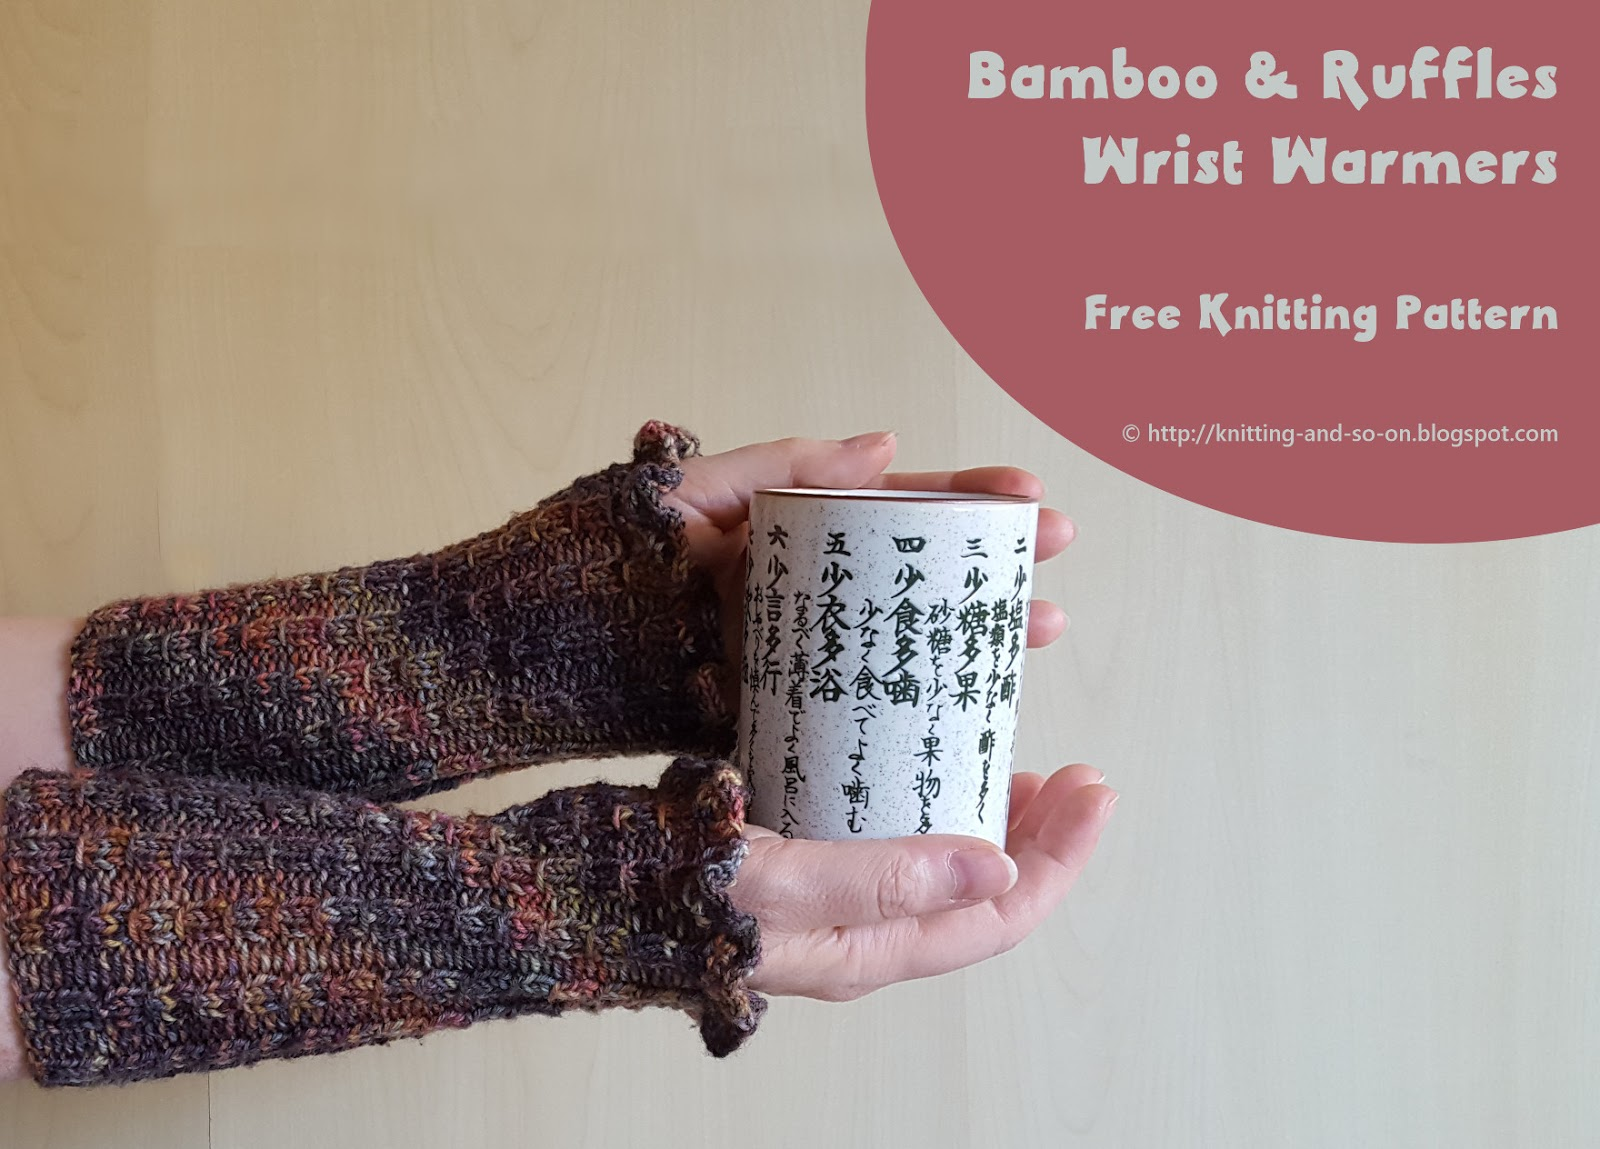 Knitting and so on bamboo ruffles wrist warmers these stretchy wrist warmers are knitted in the round and very easy to knit ie the pattern is suited for beginners the stitch pattern is called bamboo bankloansurffo Image collections